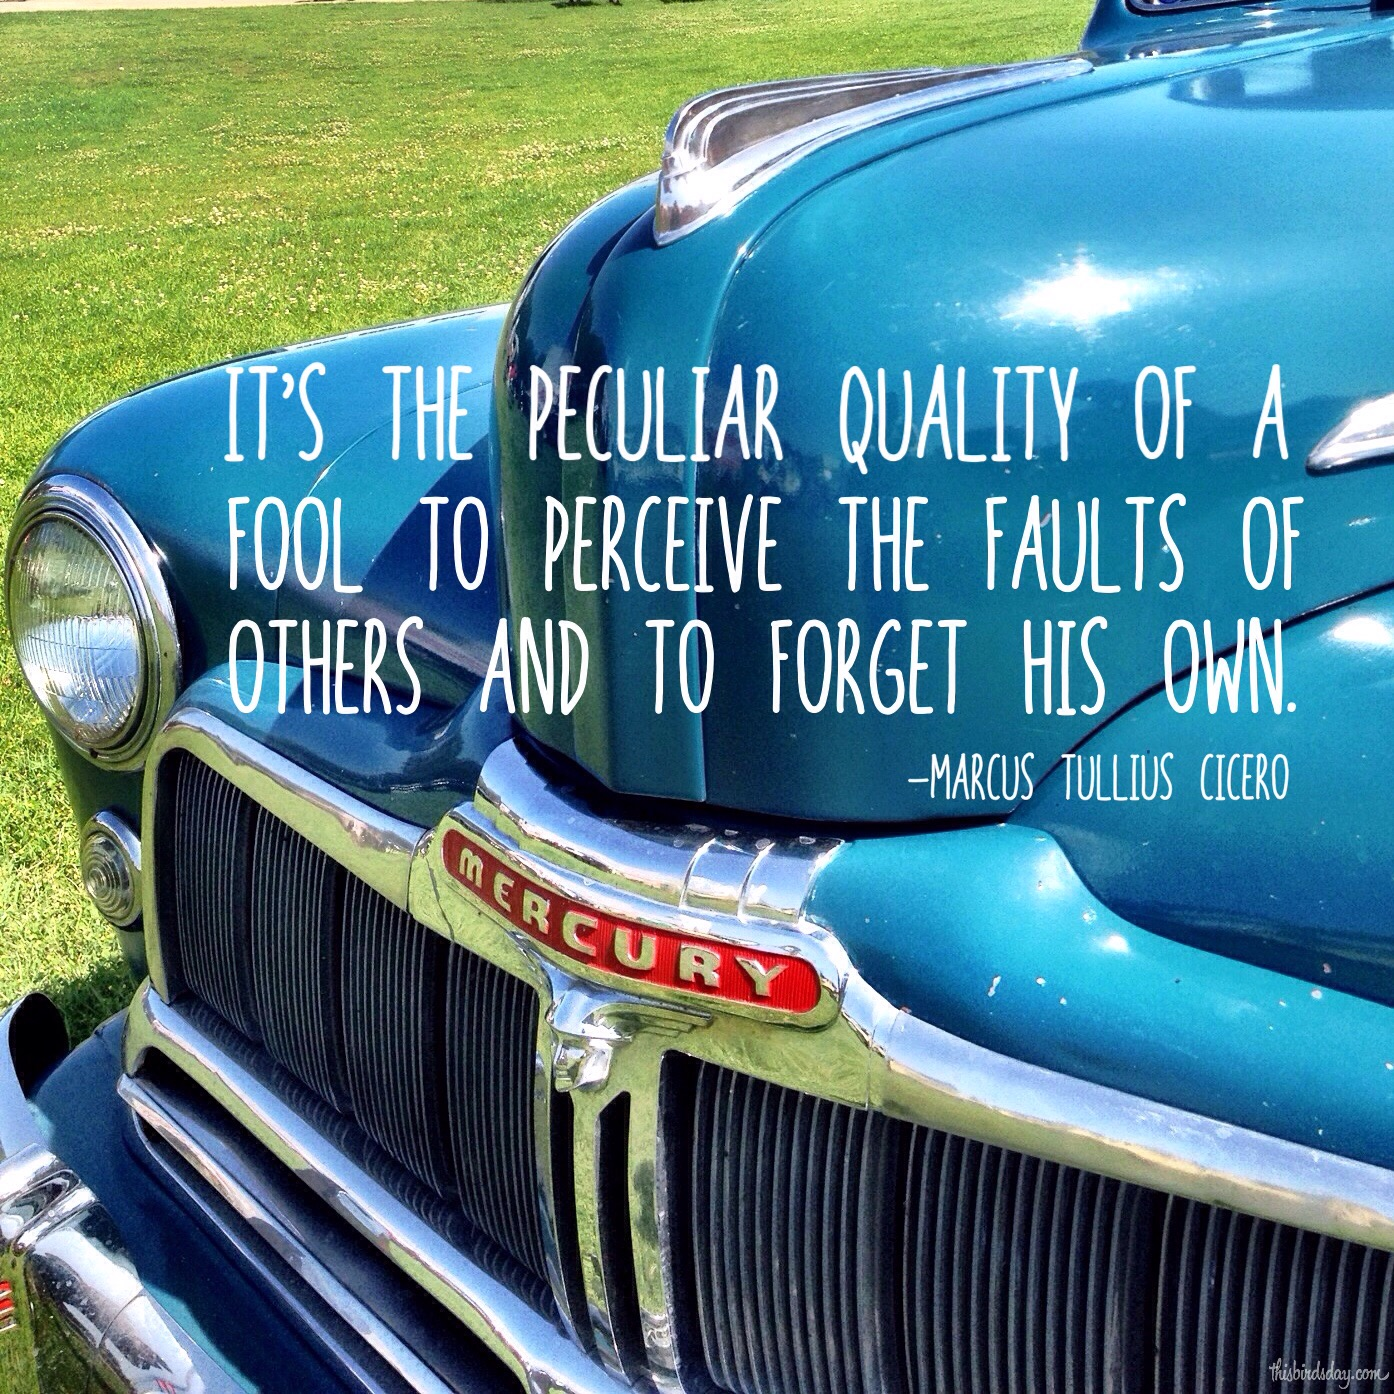 """""""It's the peculiar quality of a fool to perceive the faults of others and to forget his own."""" Marcus Tullius Cicero Photo Copyright Sheri Landry (thisbirdsday.com)"""